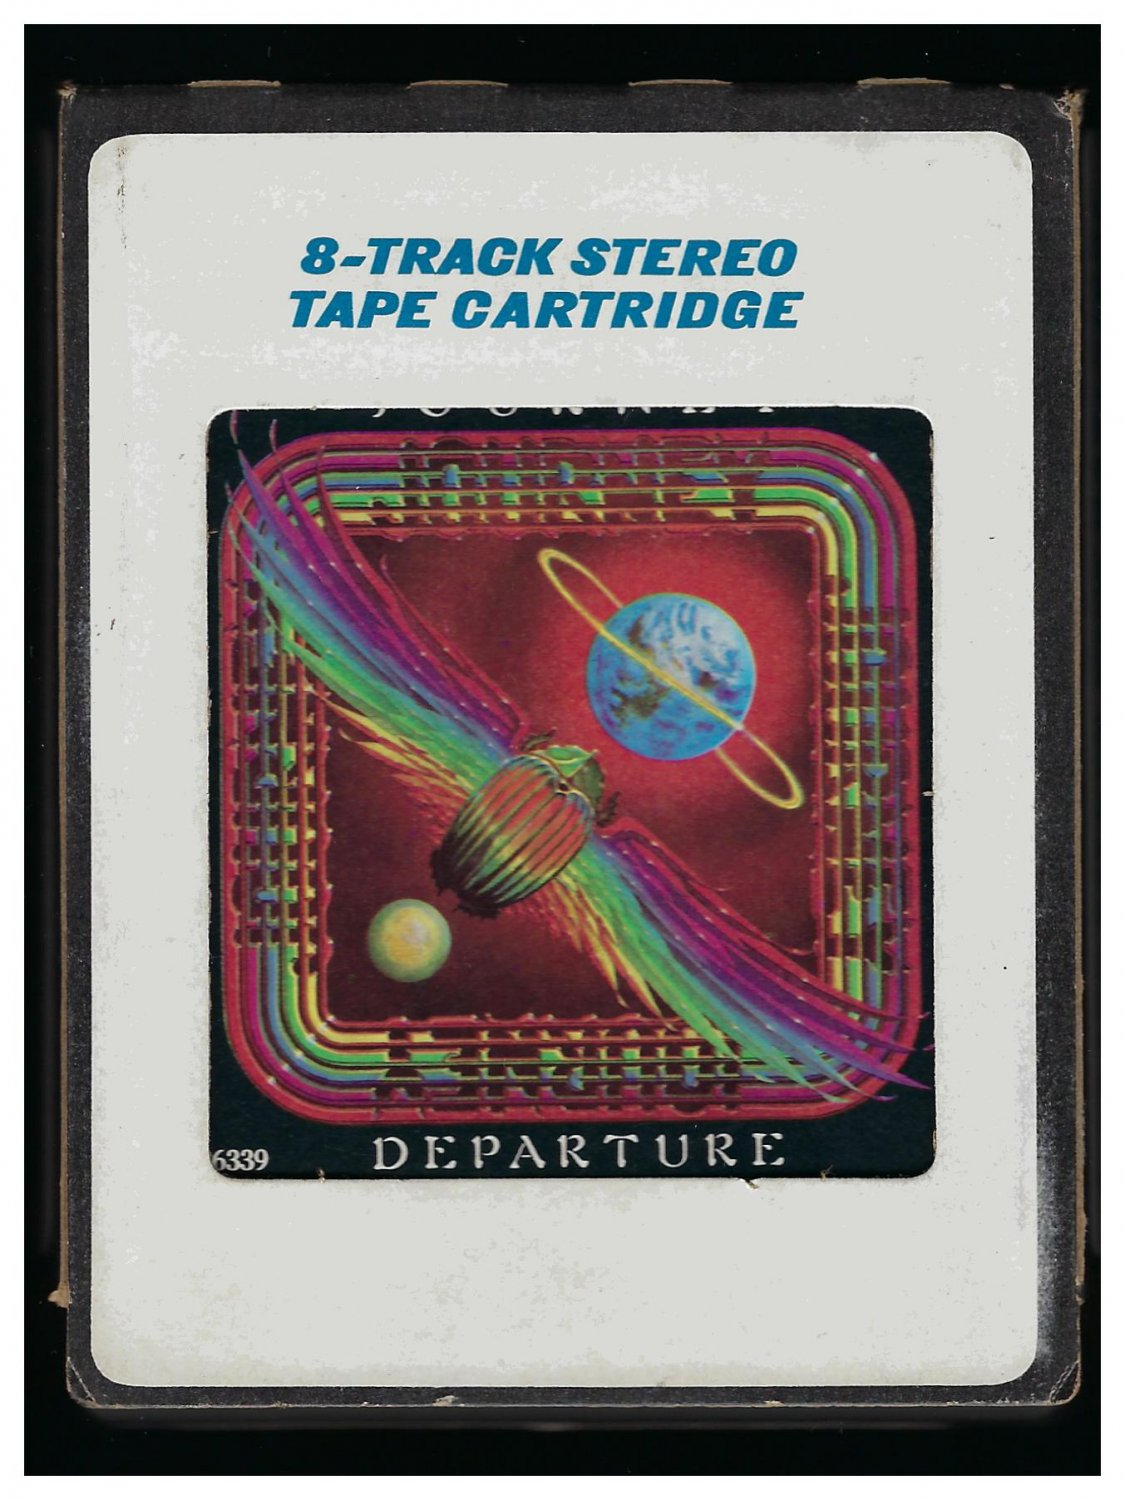 Journey - Departure 1980 CBS A29A 8-TRACK TAPE